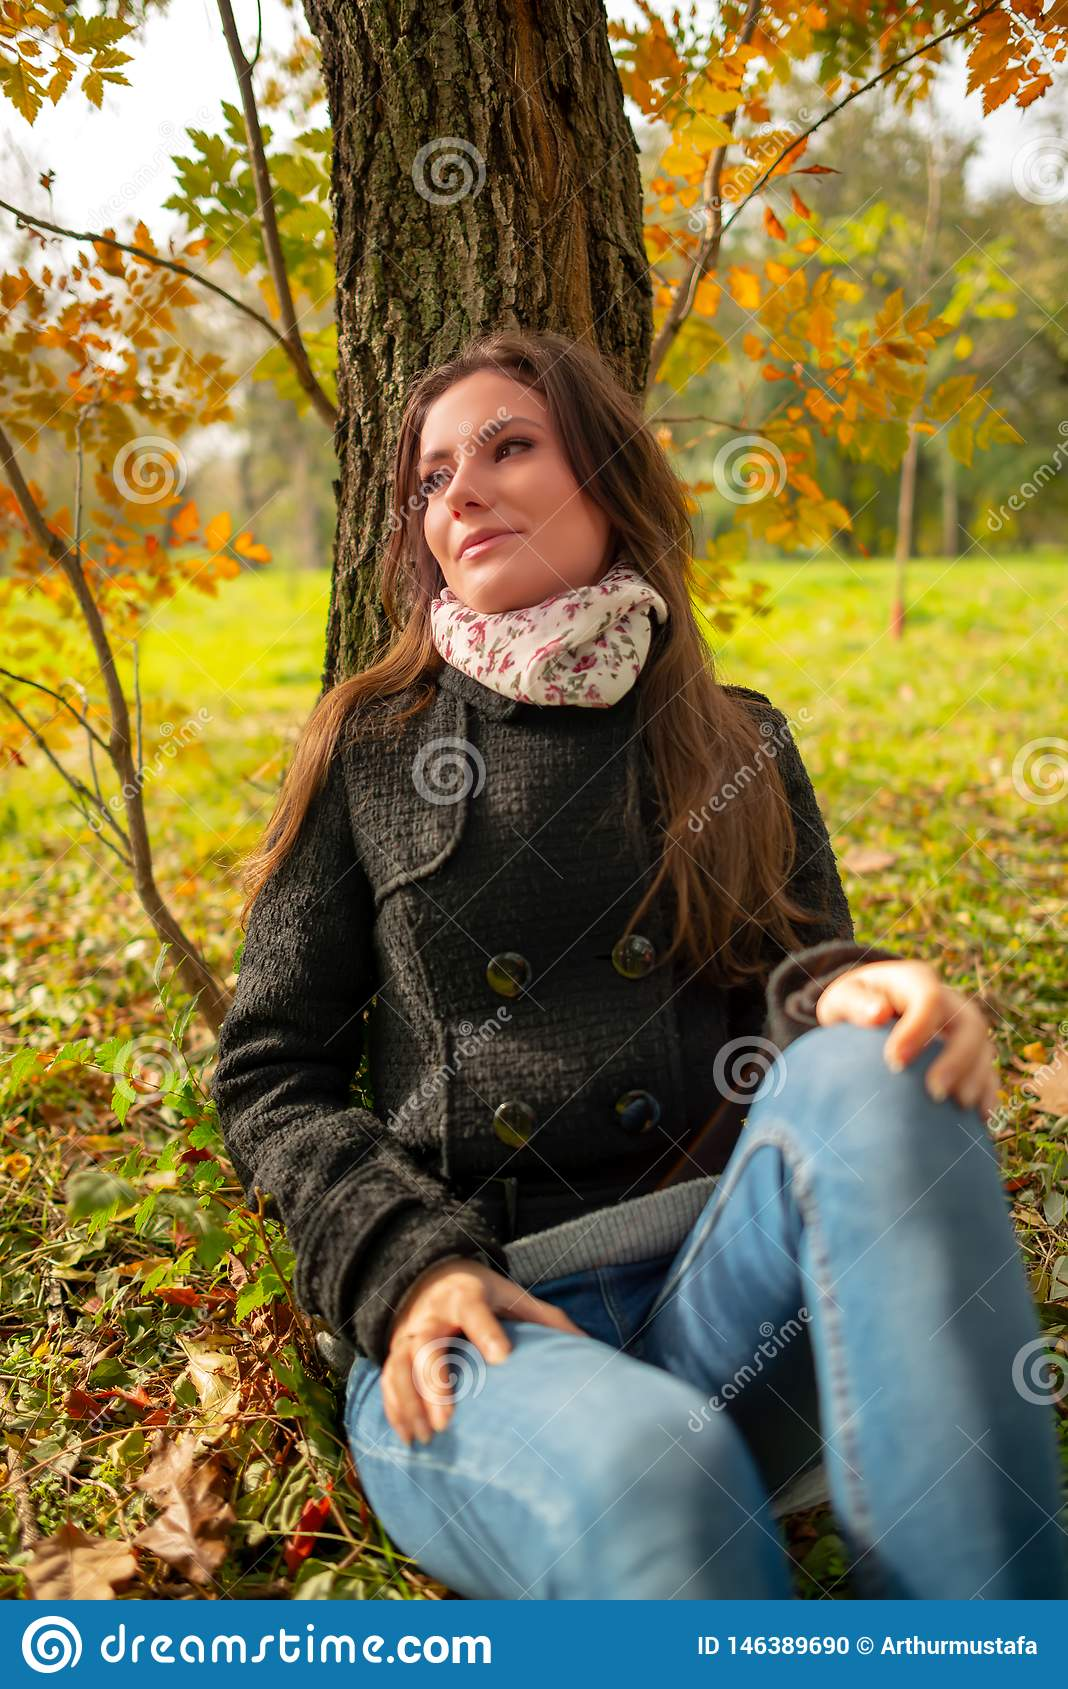 Beautiful romantic girl in a park autumn scenery, sitting down and leaning against a tree, enjoying the warm sunny day